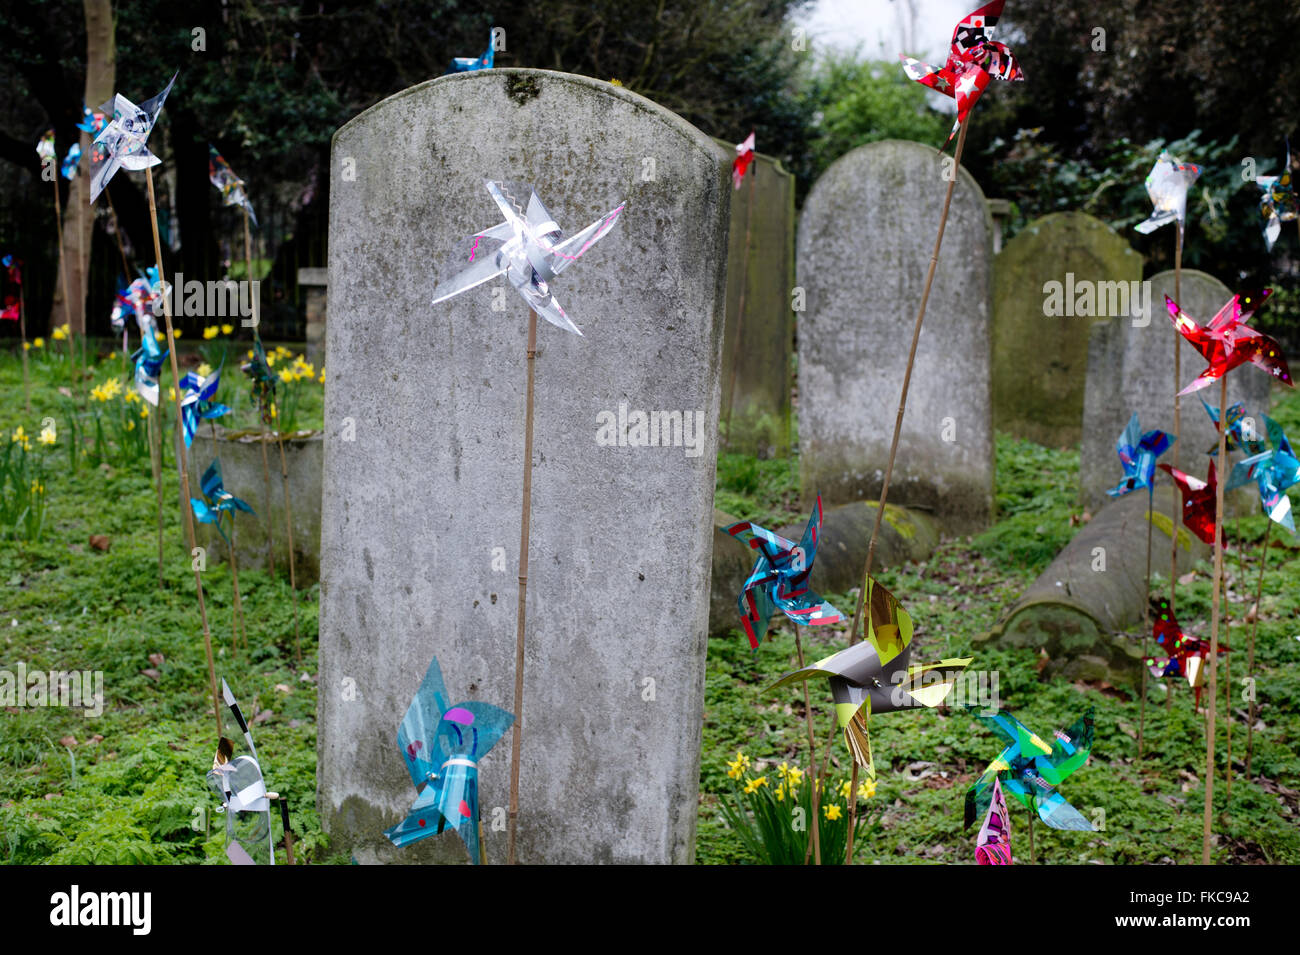 Old Church, Stoke Newington, Hackney. Windmills in the graveyard part of an event called Tilt, a community arts - Stock Image